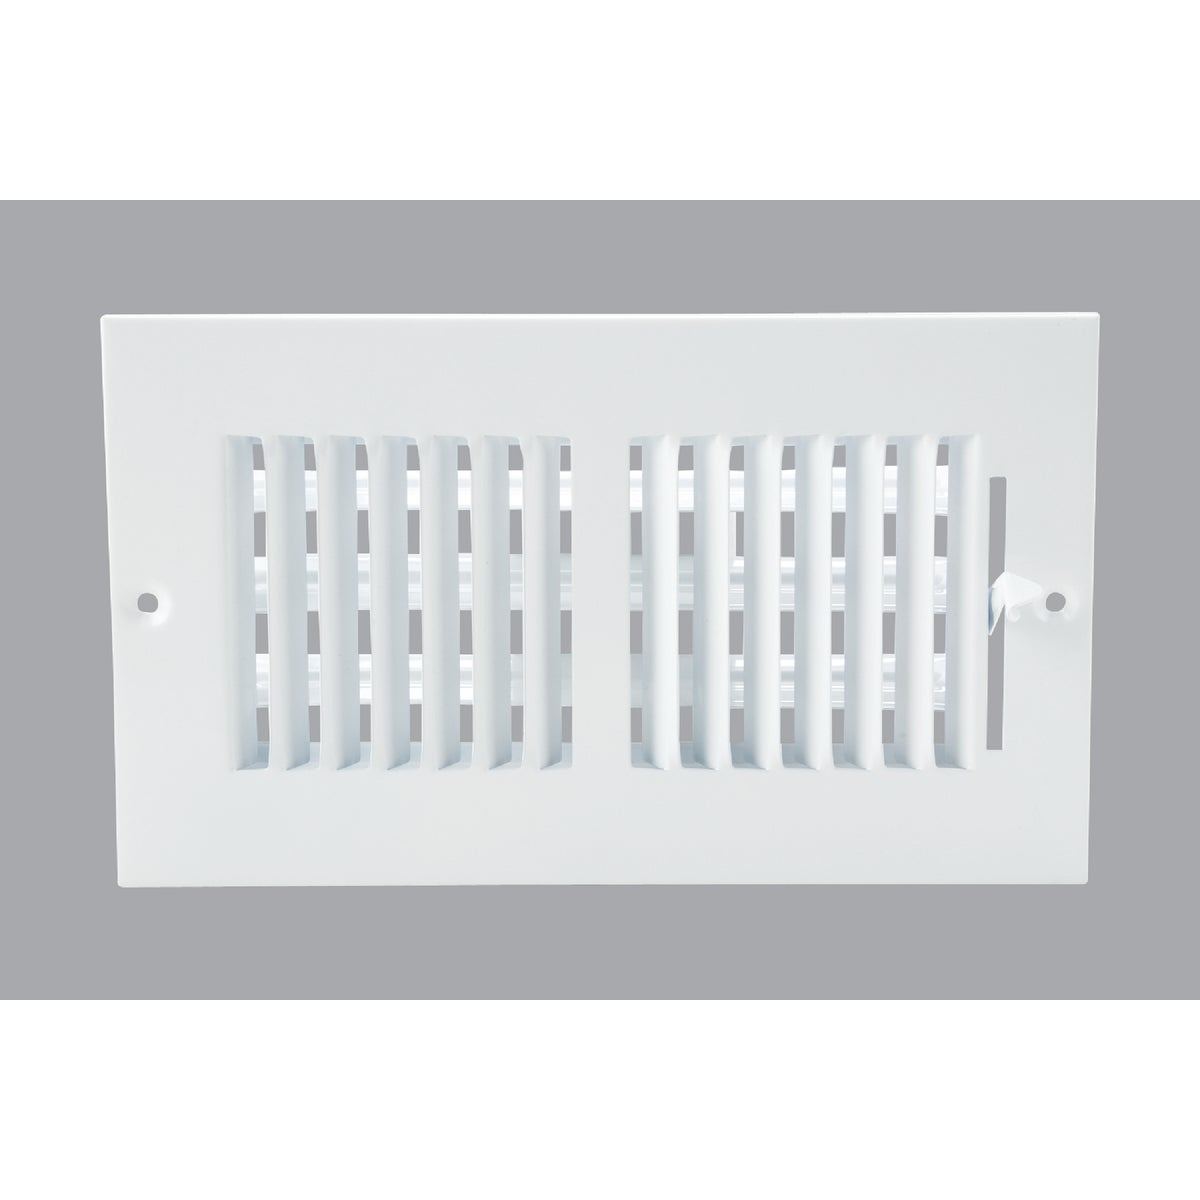 4X8 WHT WALL REGISTER - 2SW0804WH-B by Do it Best